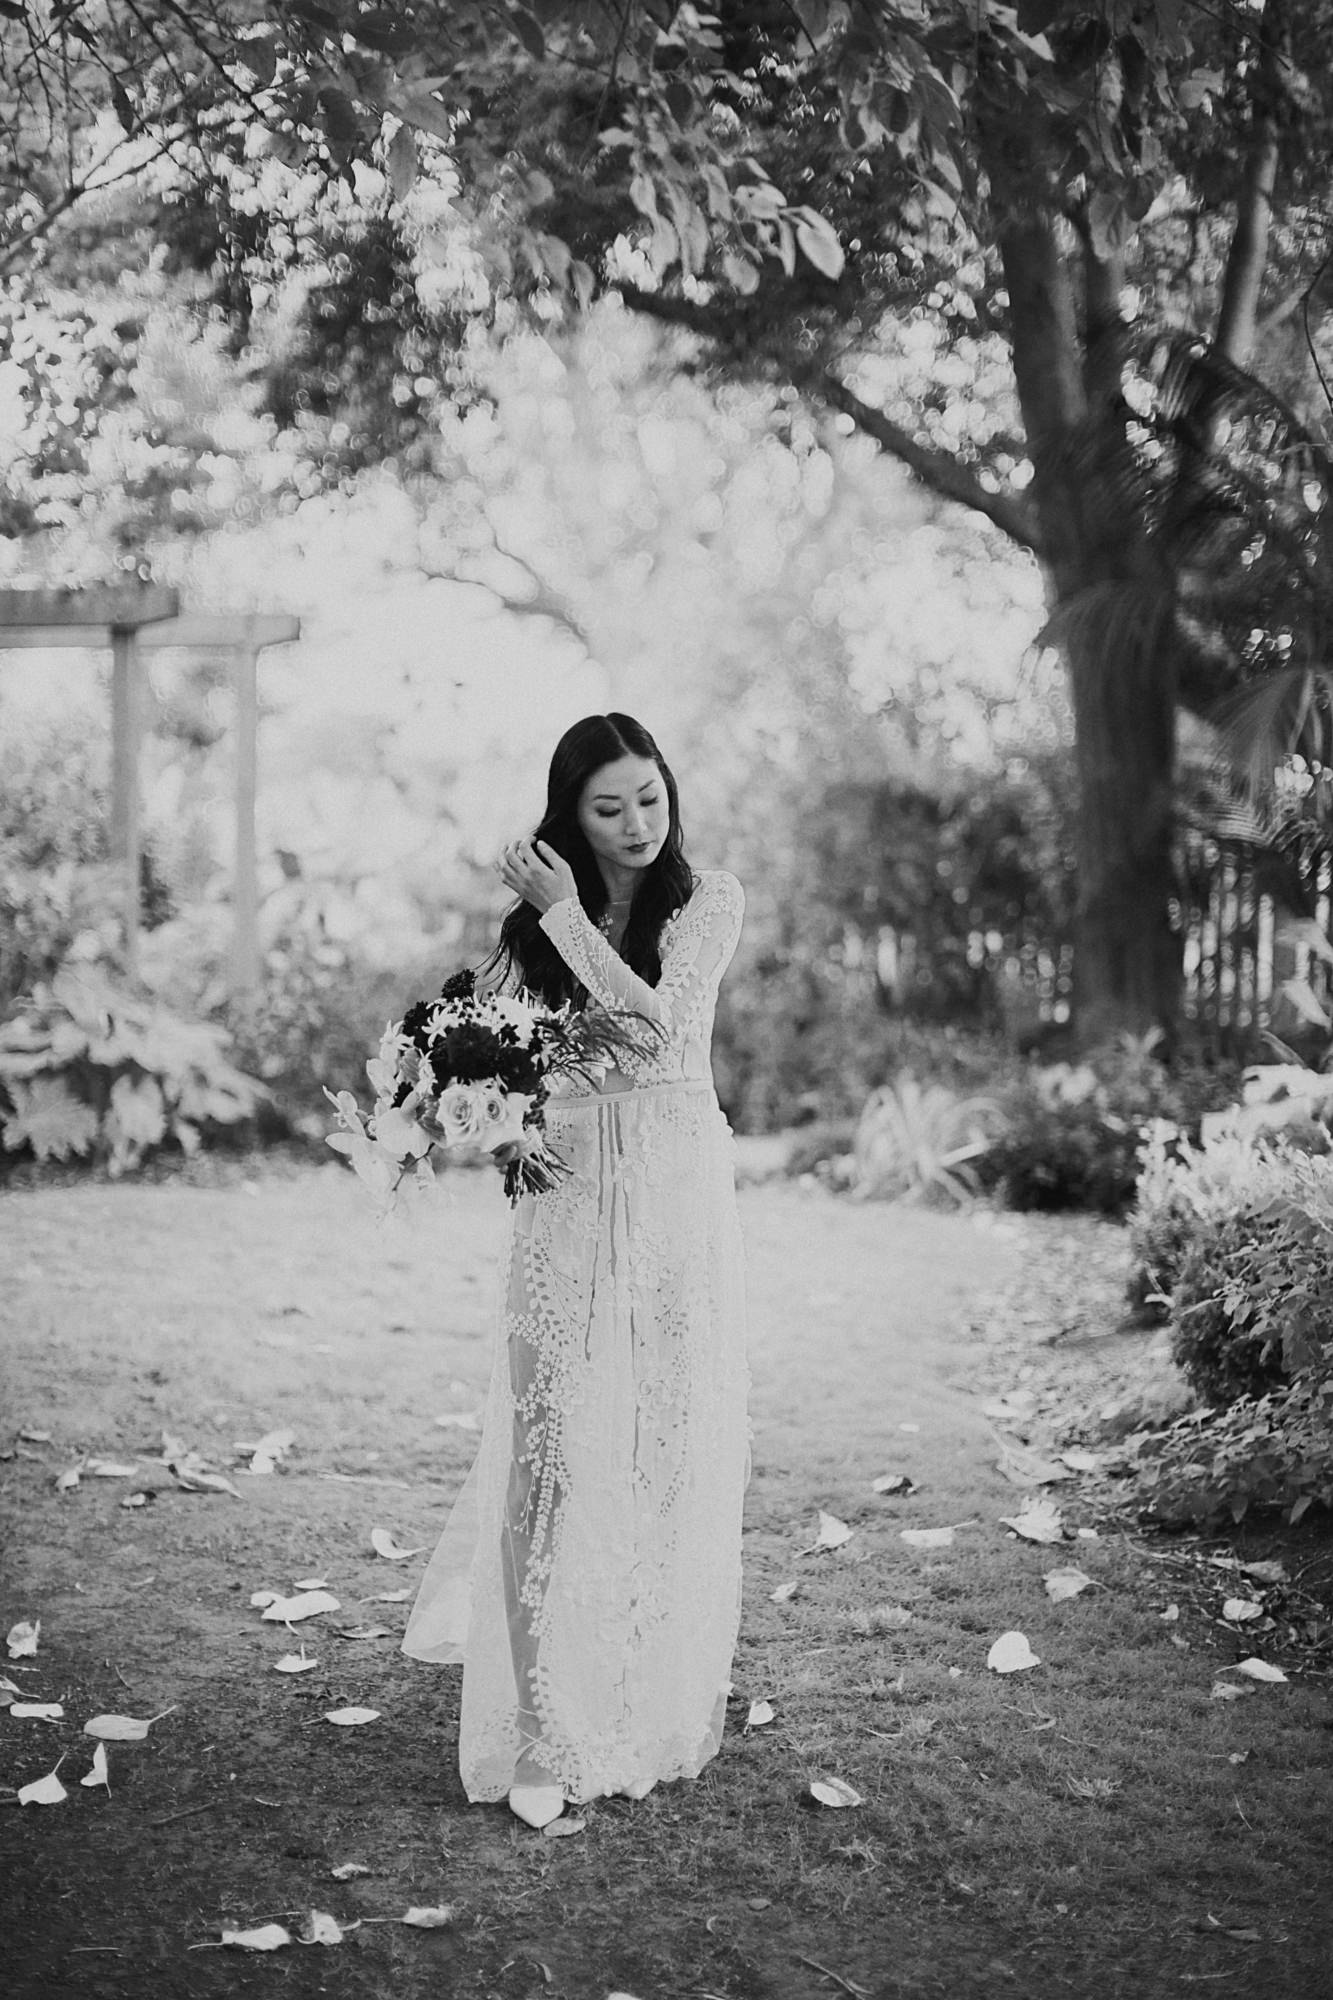 Bride in applique gown - photo by Dan O'Day